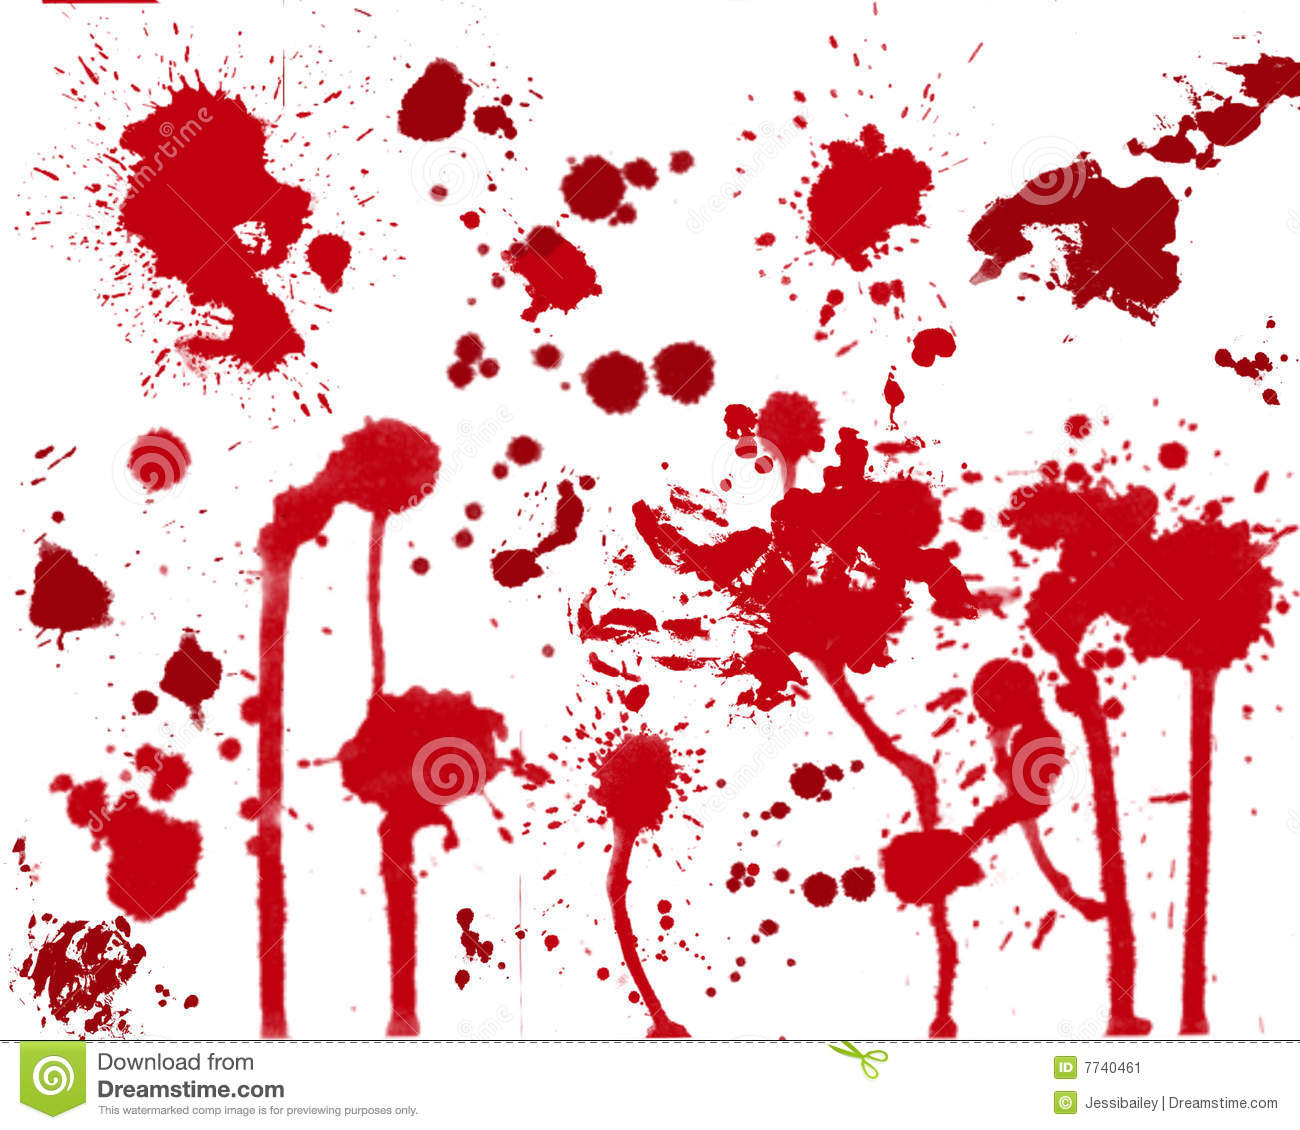 Blood stains clipart. Stock image